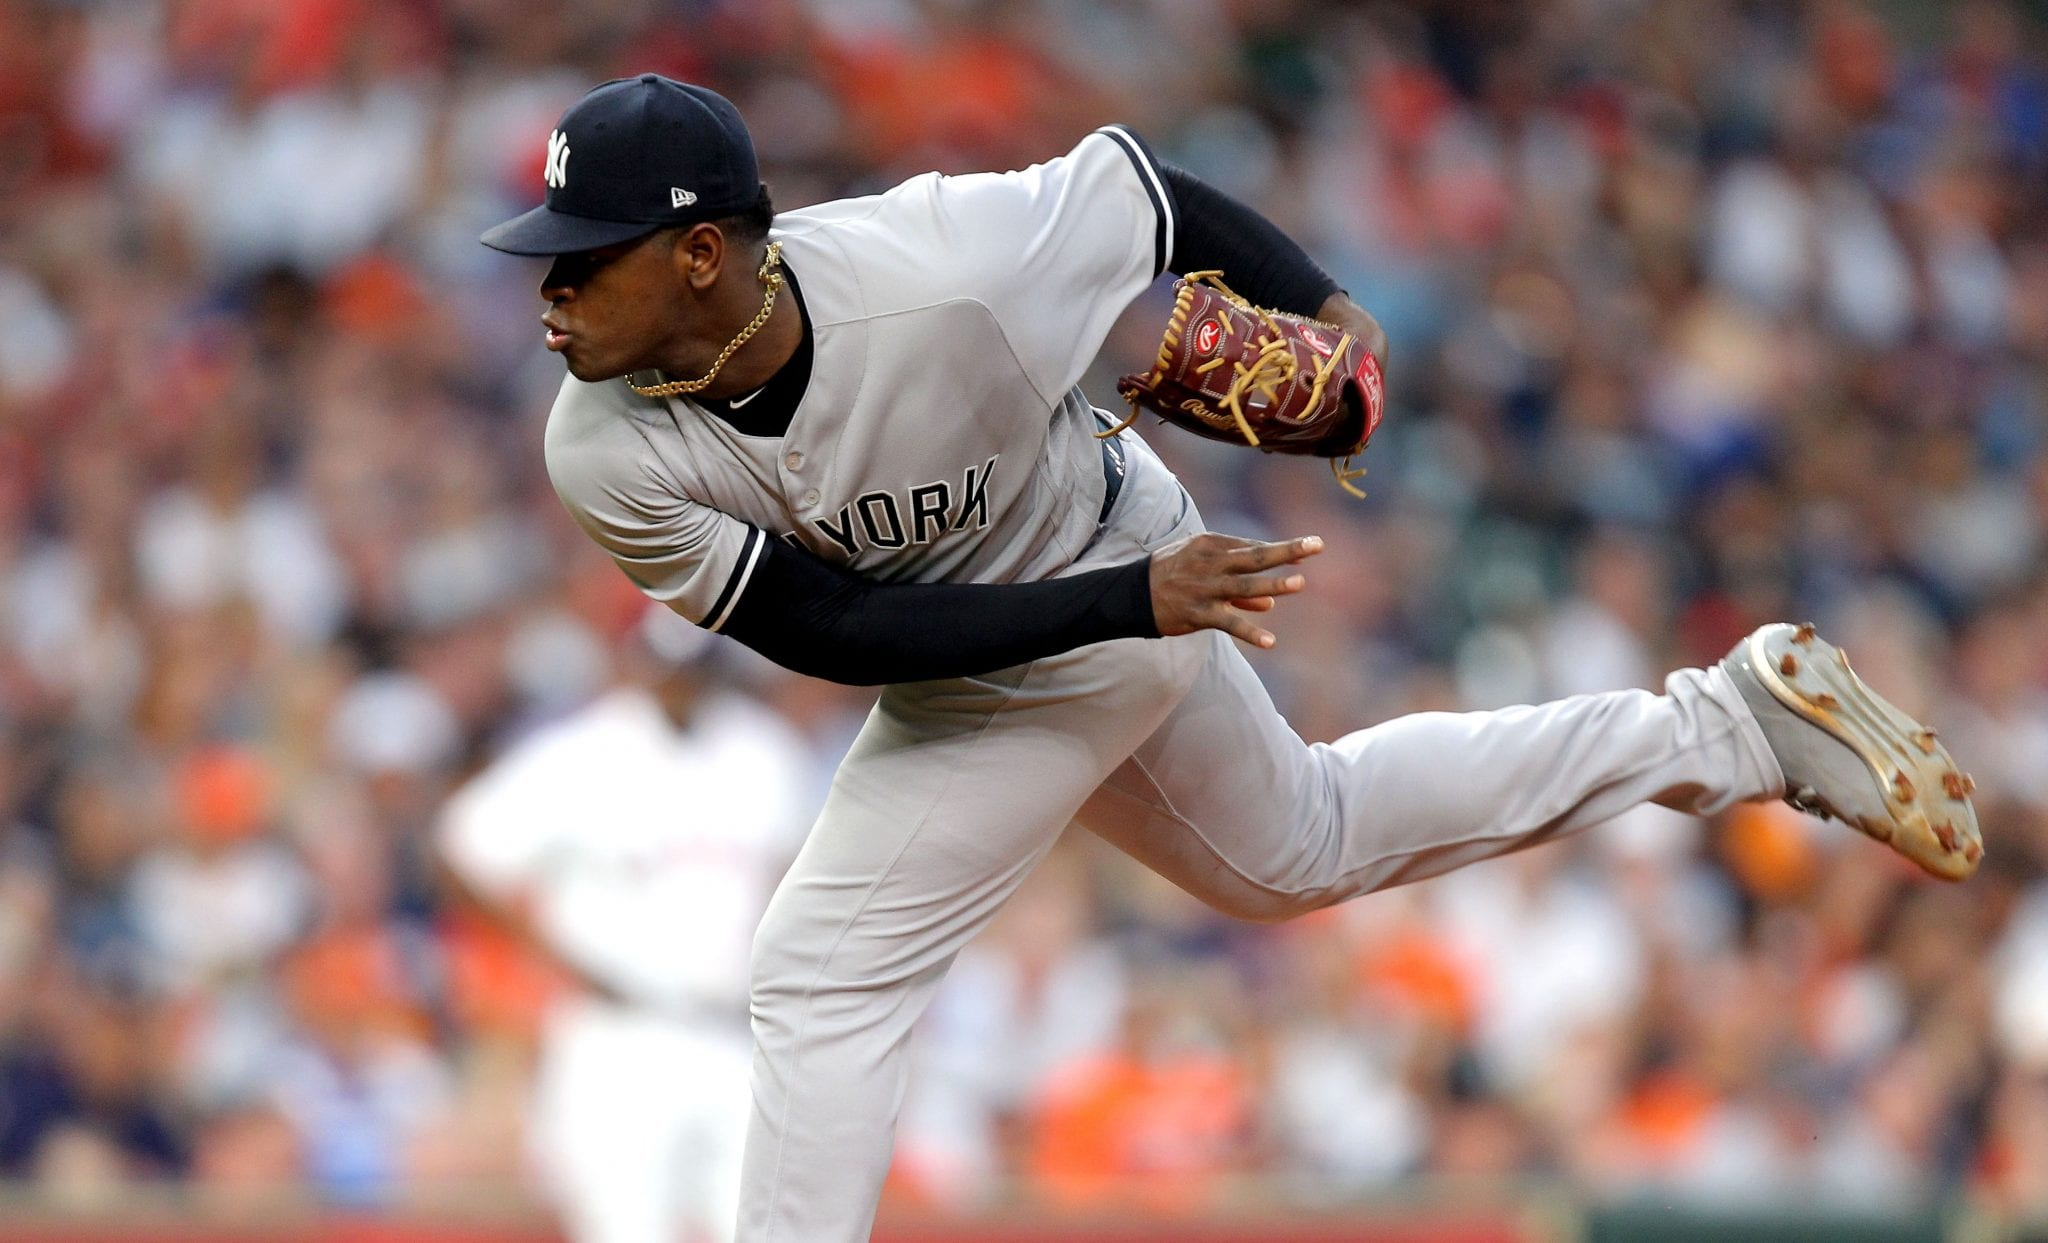 New York Yankees, Luis Severino